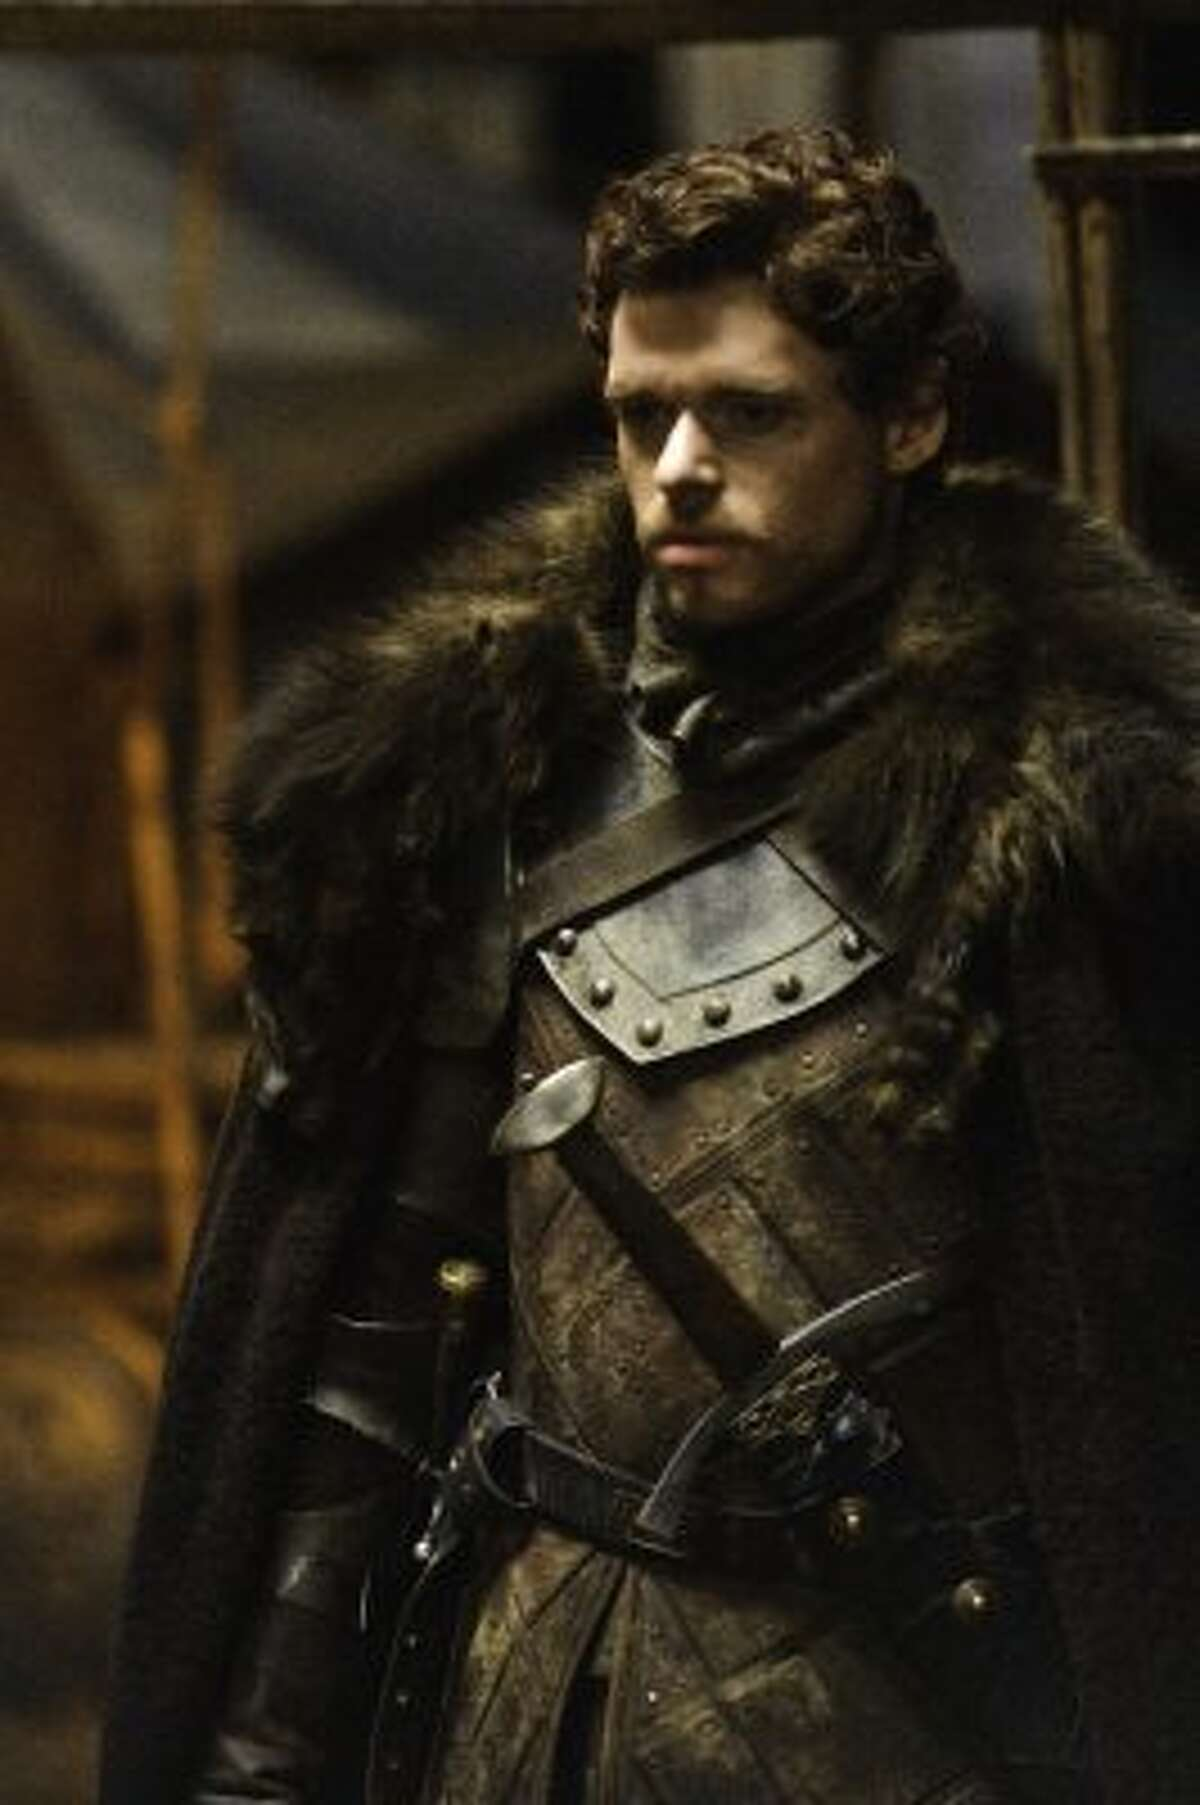 Robb Stark (Richard Madden) : The King of the North has enjoyed a run of victories in his battles against the Lannisters, but he's finding leadership exhausting, especially after his mother frees Jaime Lannister in hope of getting her daughters back.